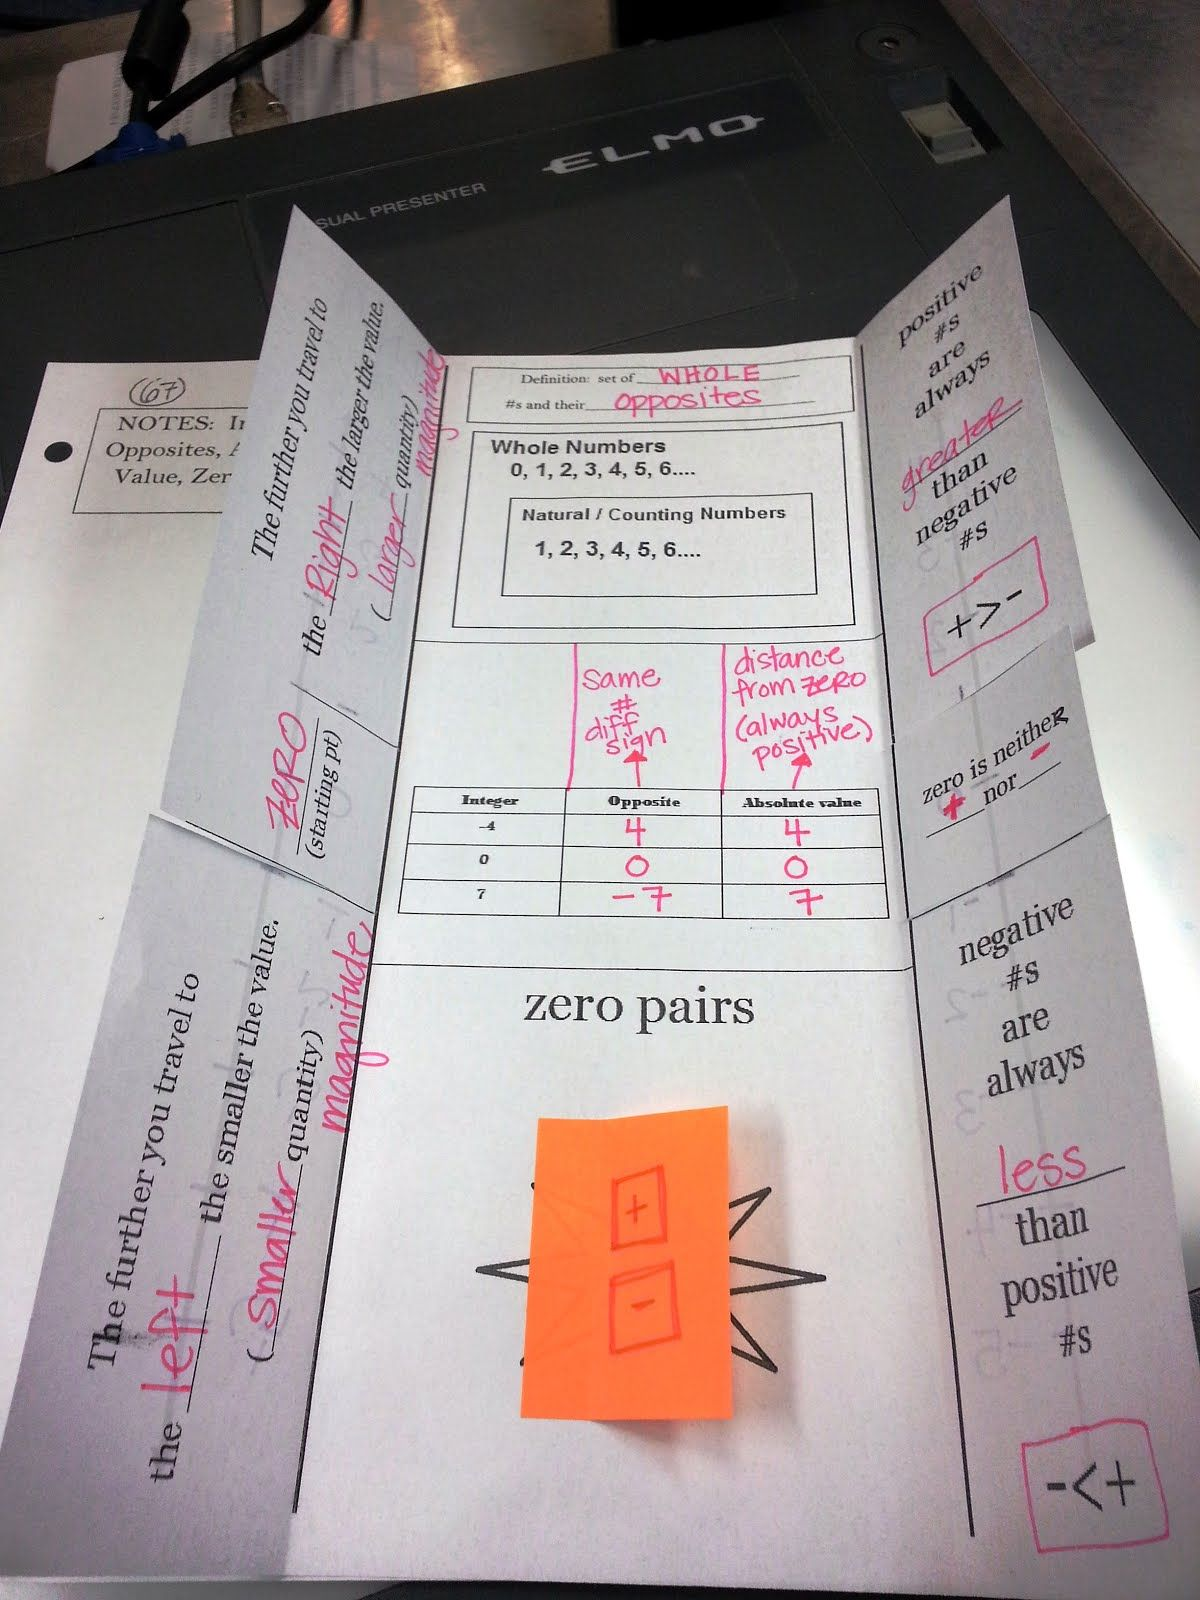 I Ve Got A Foldable For That Integers Absolute Value Zero Pairs